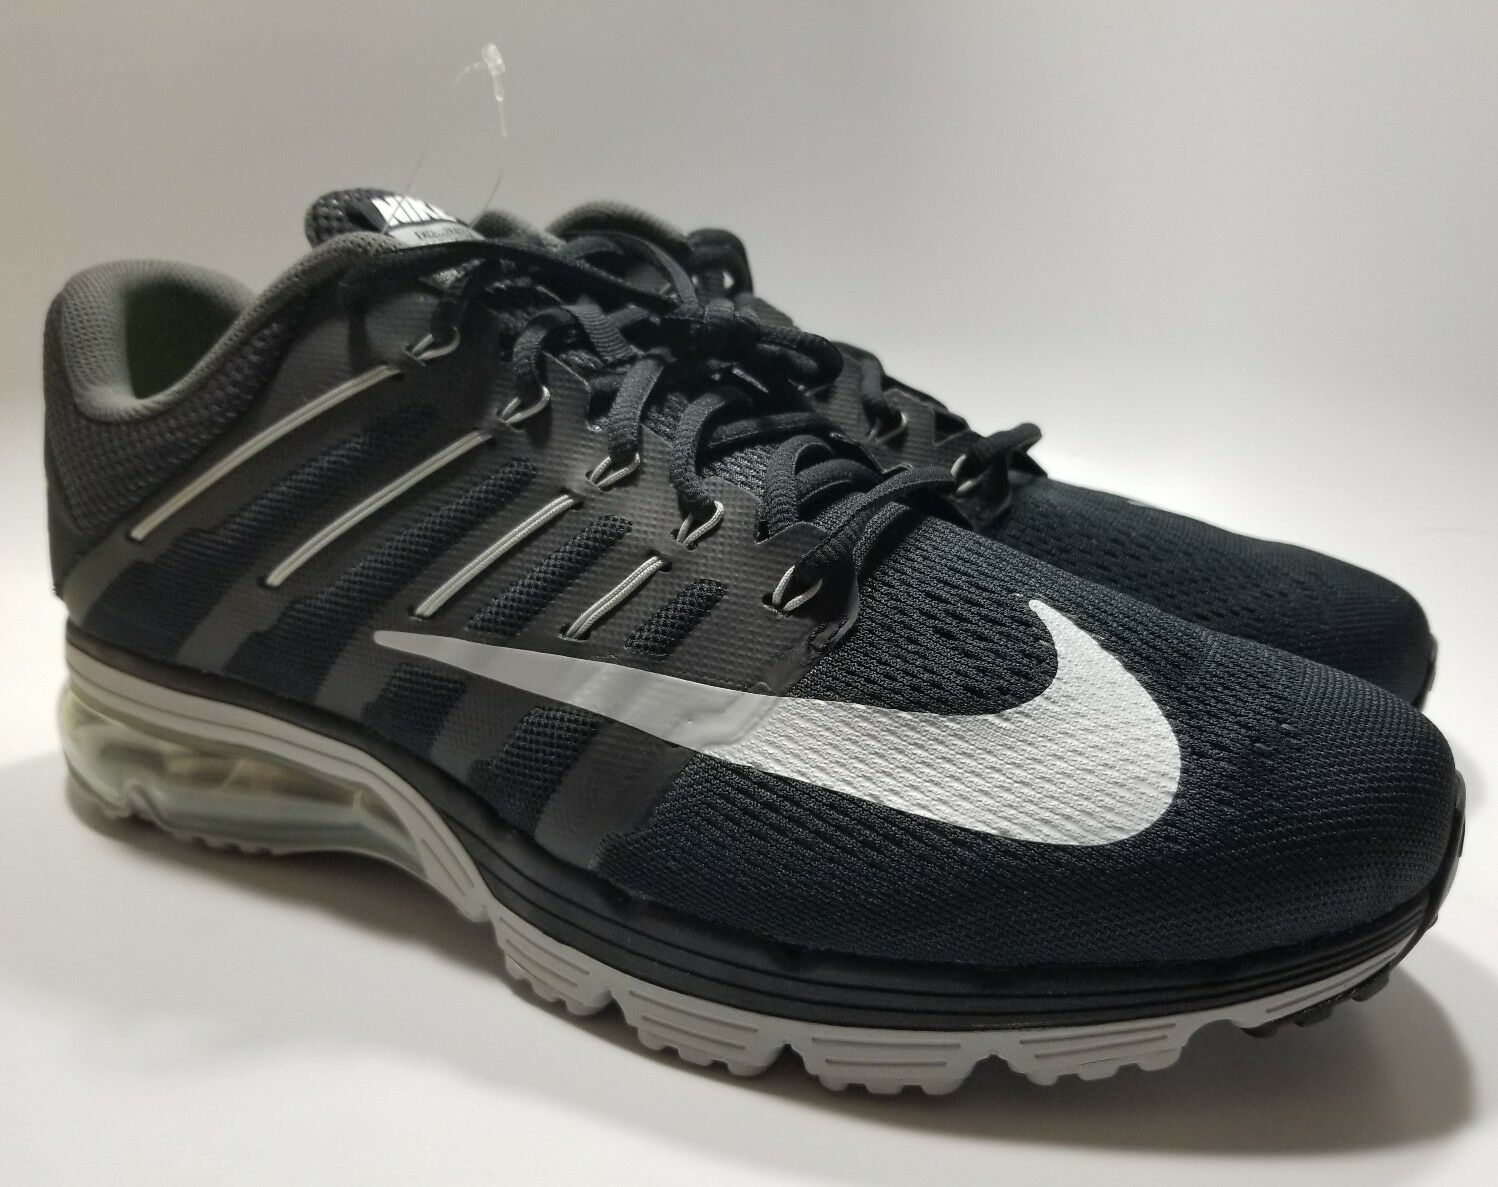 Nike Air Shoes, Max Excellerate 4 Men Athletic Shoes, Air Black/White/Dark Grey, 806770-010 769863